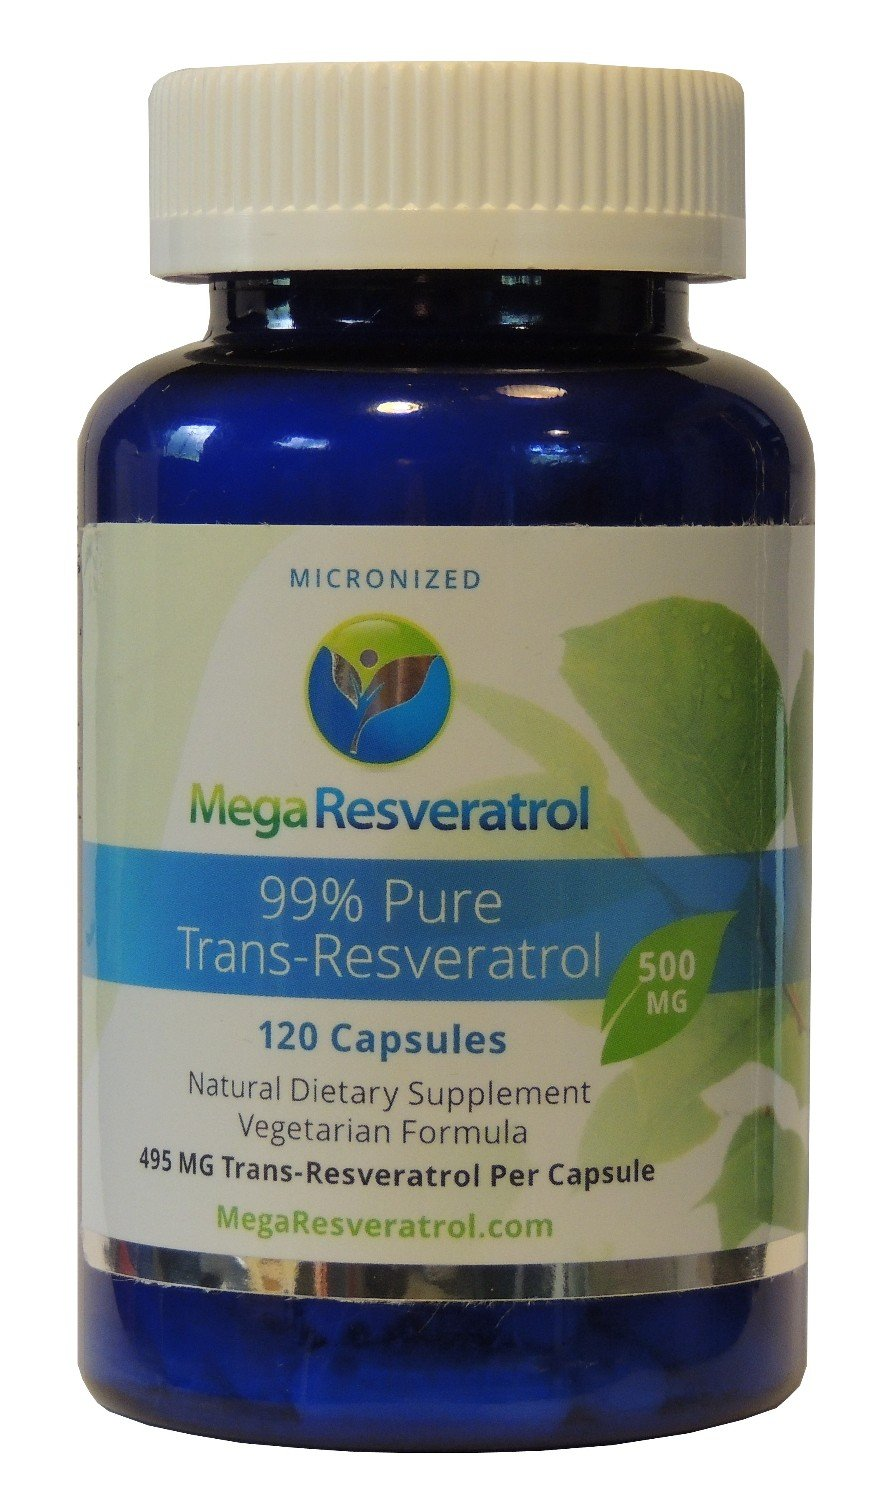 Mega Resveratrol, Pharmaceutical Grade, 99% Pure Micronized Trans-Resveratrol, 120 Vegetarian Capsules, 500 mg per Capsule. Purity Certified. Absolutely no excipients (aka Inactive Ingredients) Added by Mega Resveratrol (Image #1)